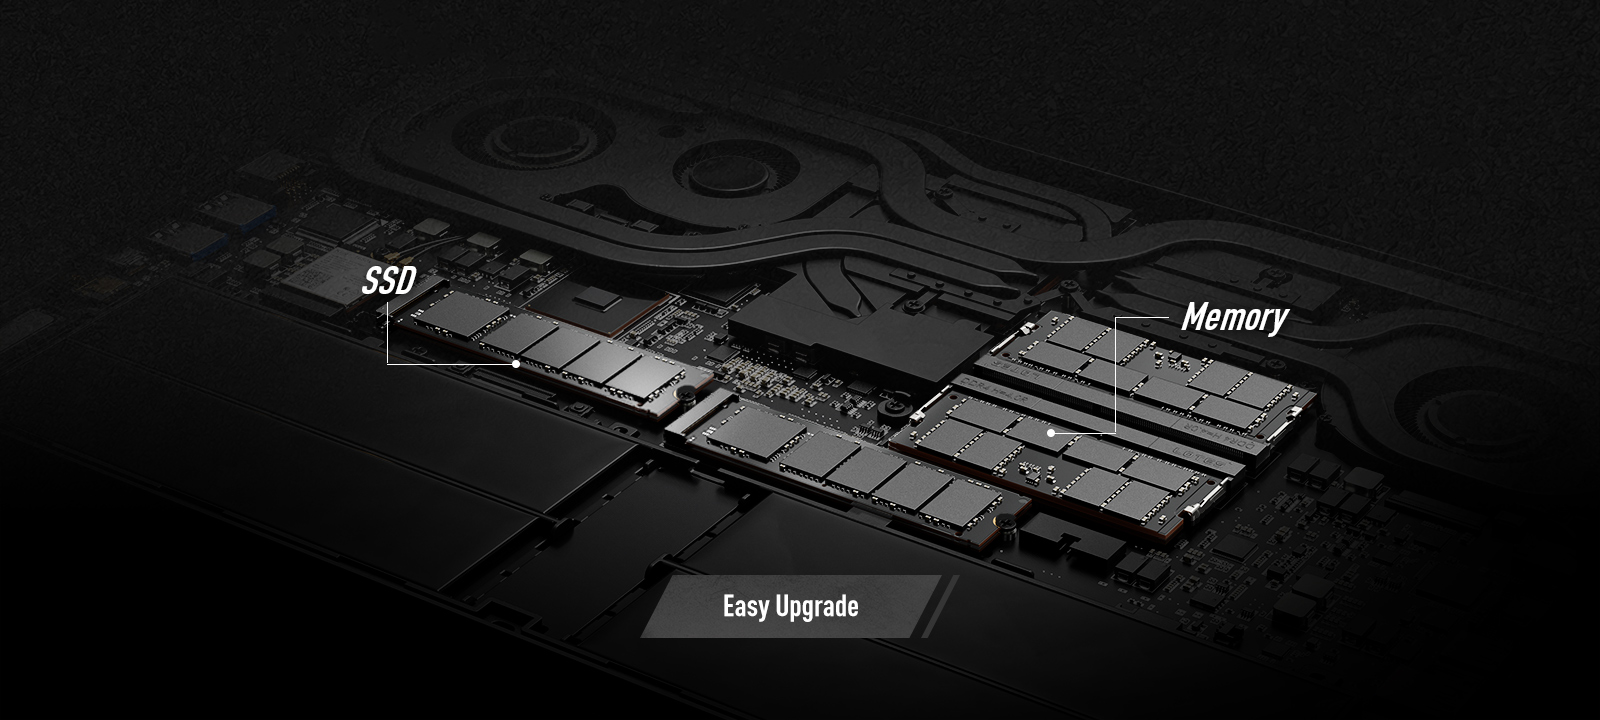 GS66 Stealth's expansion slots: Easy Upgrade memory and SSD.